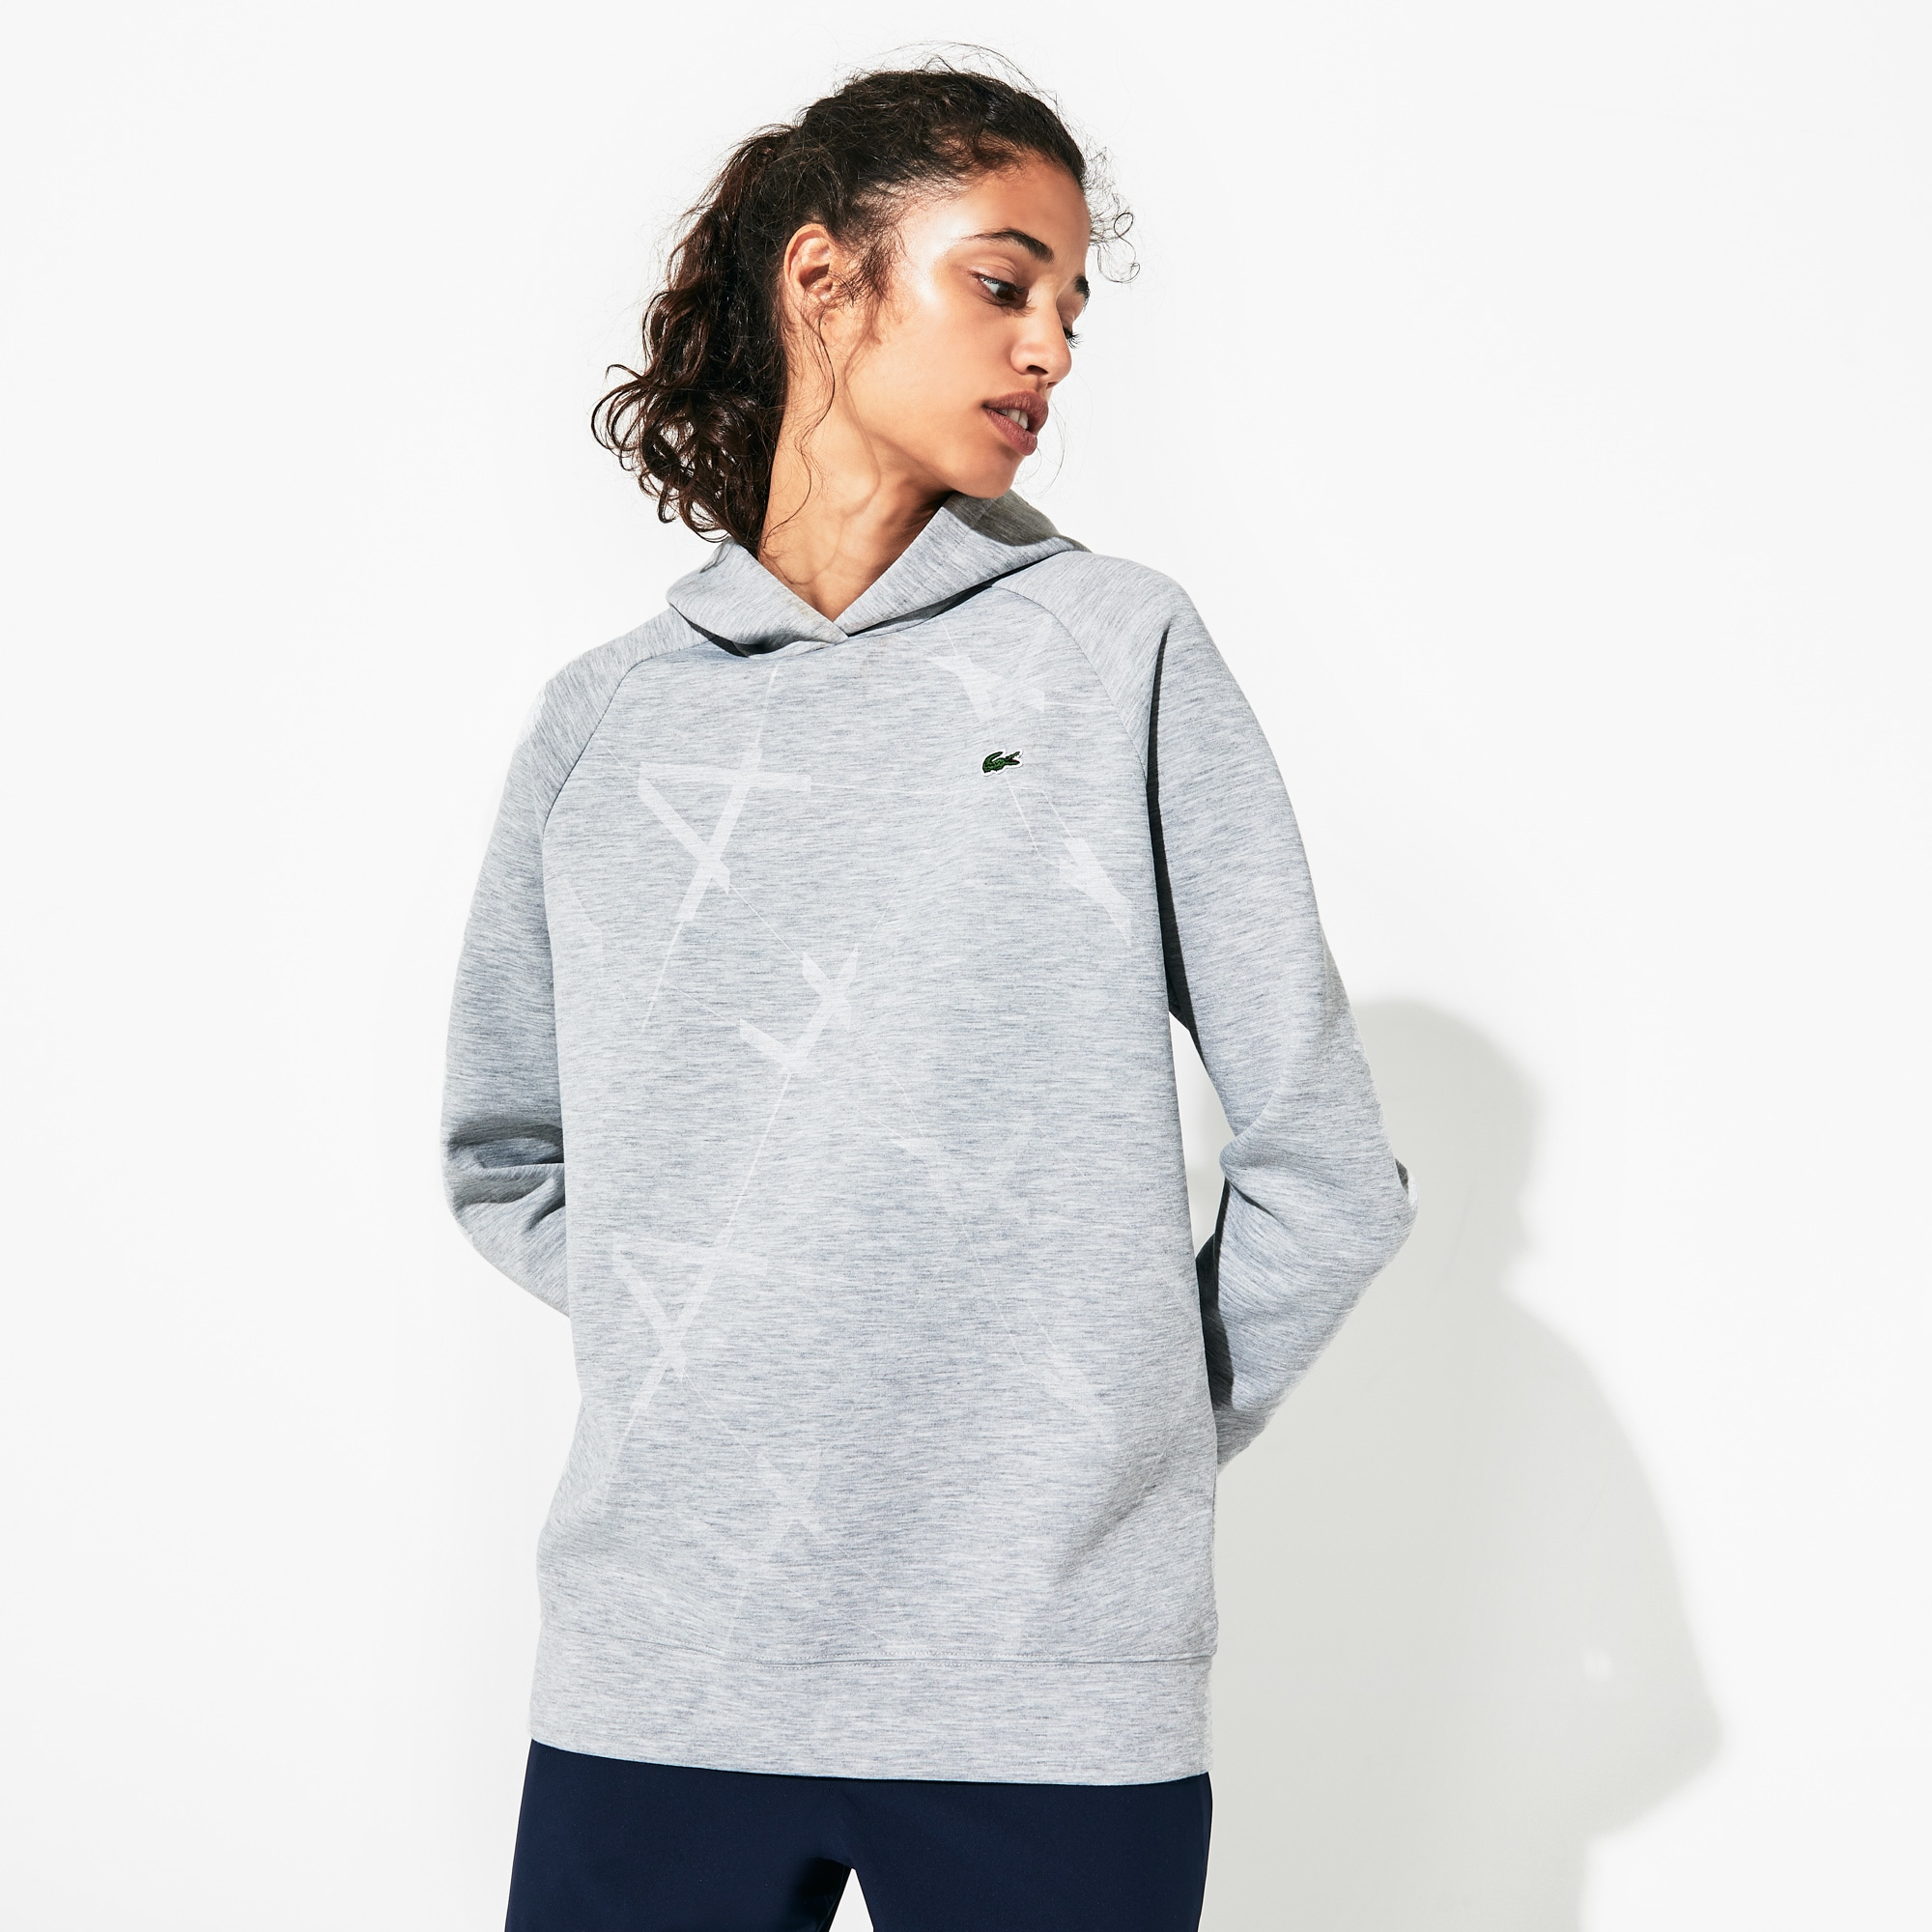 26a168e1 Sweaters and Sweatshirts | Women's Clothing | LACOSTE